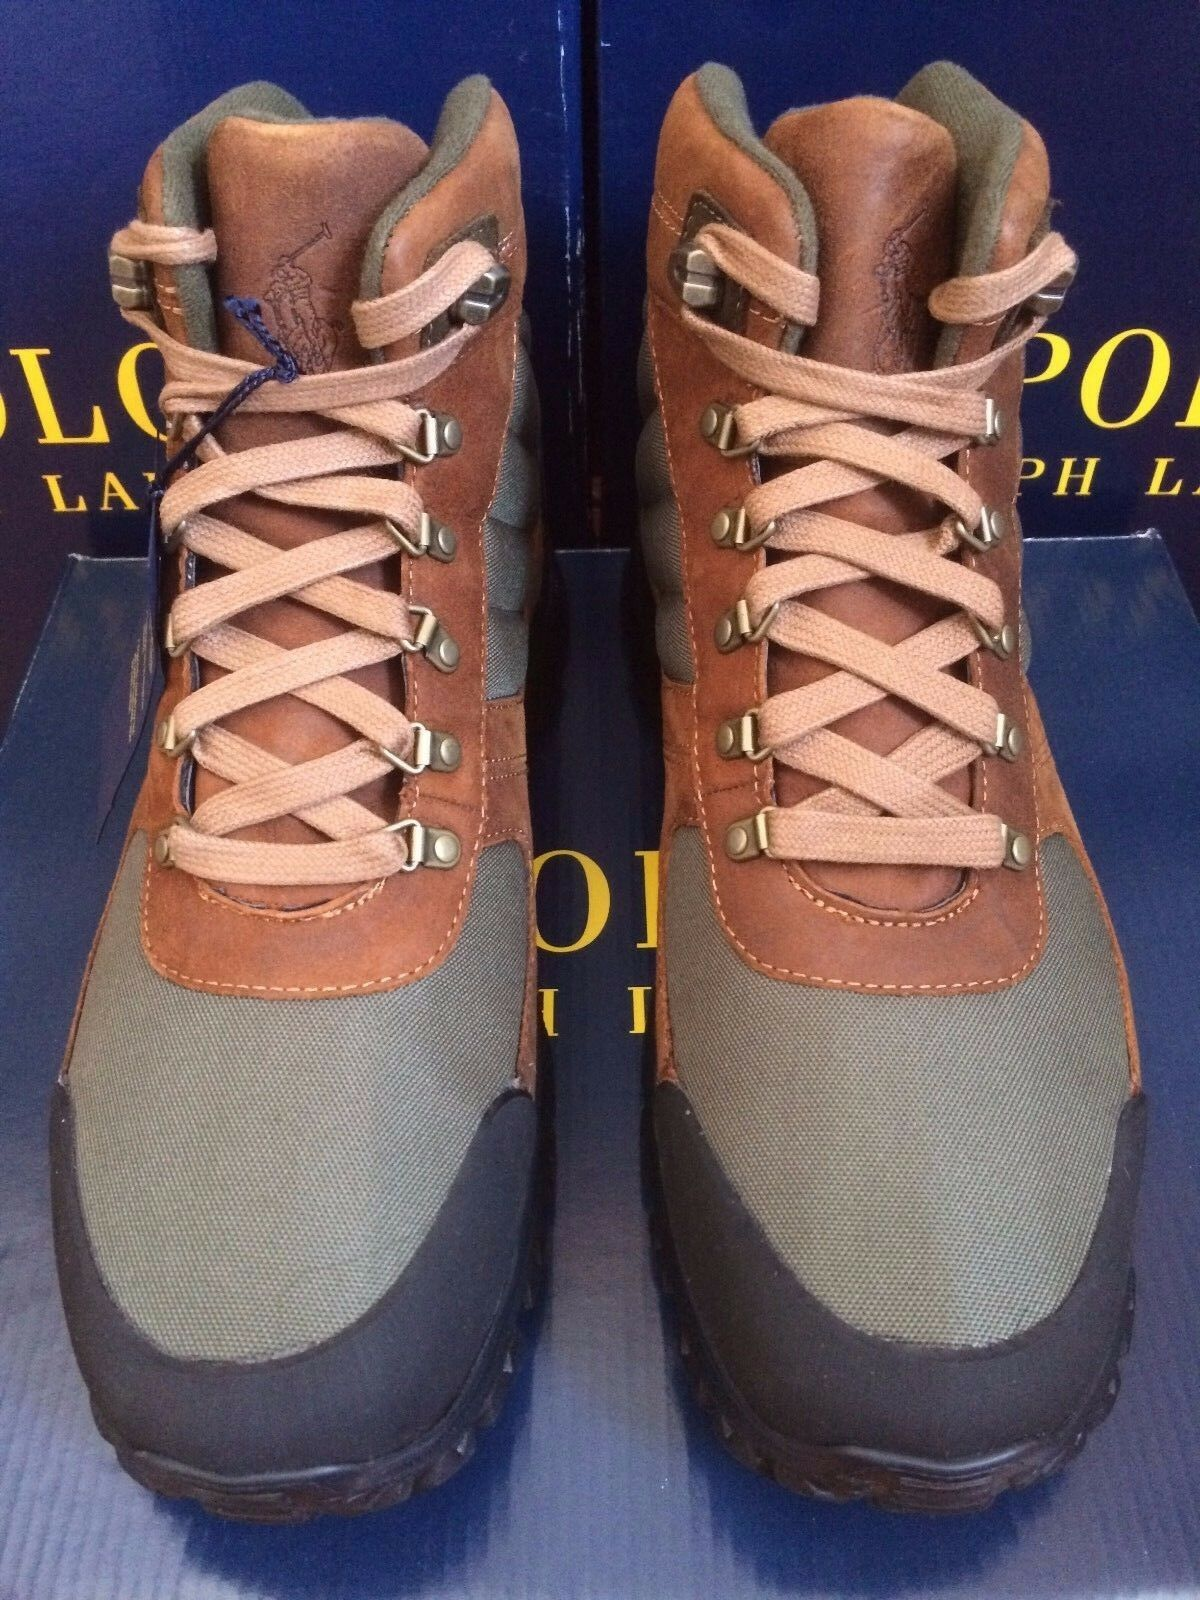 NIB POLO RALPH LAUREN BROWN SUEDE GREEN UPPER BROWN LACES ANKLE HIKING BOOTS